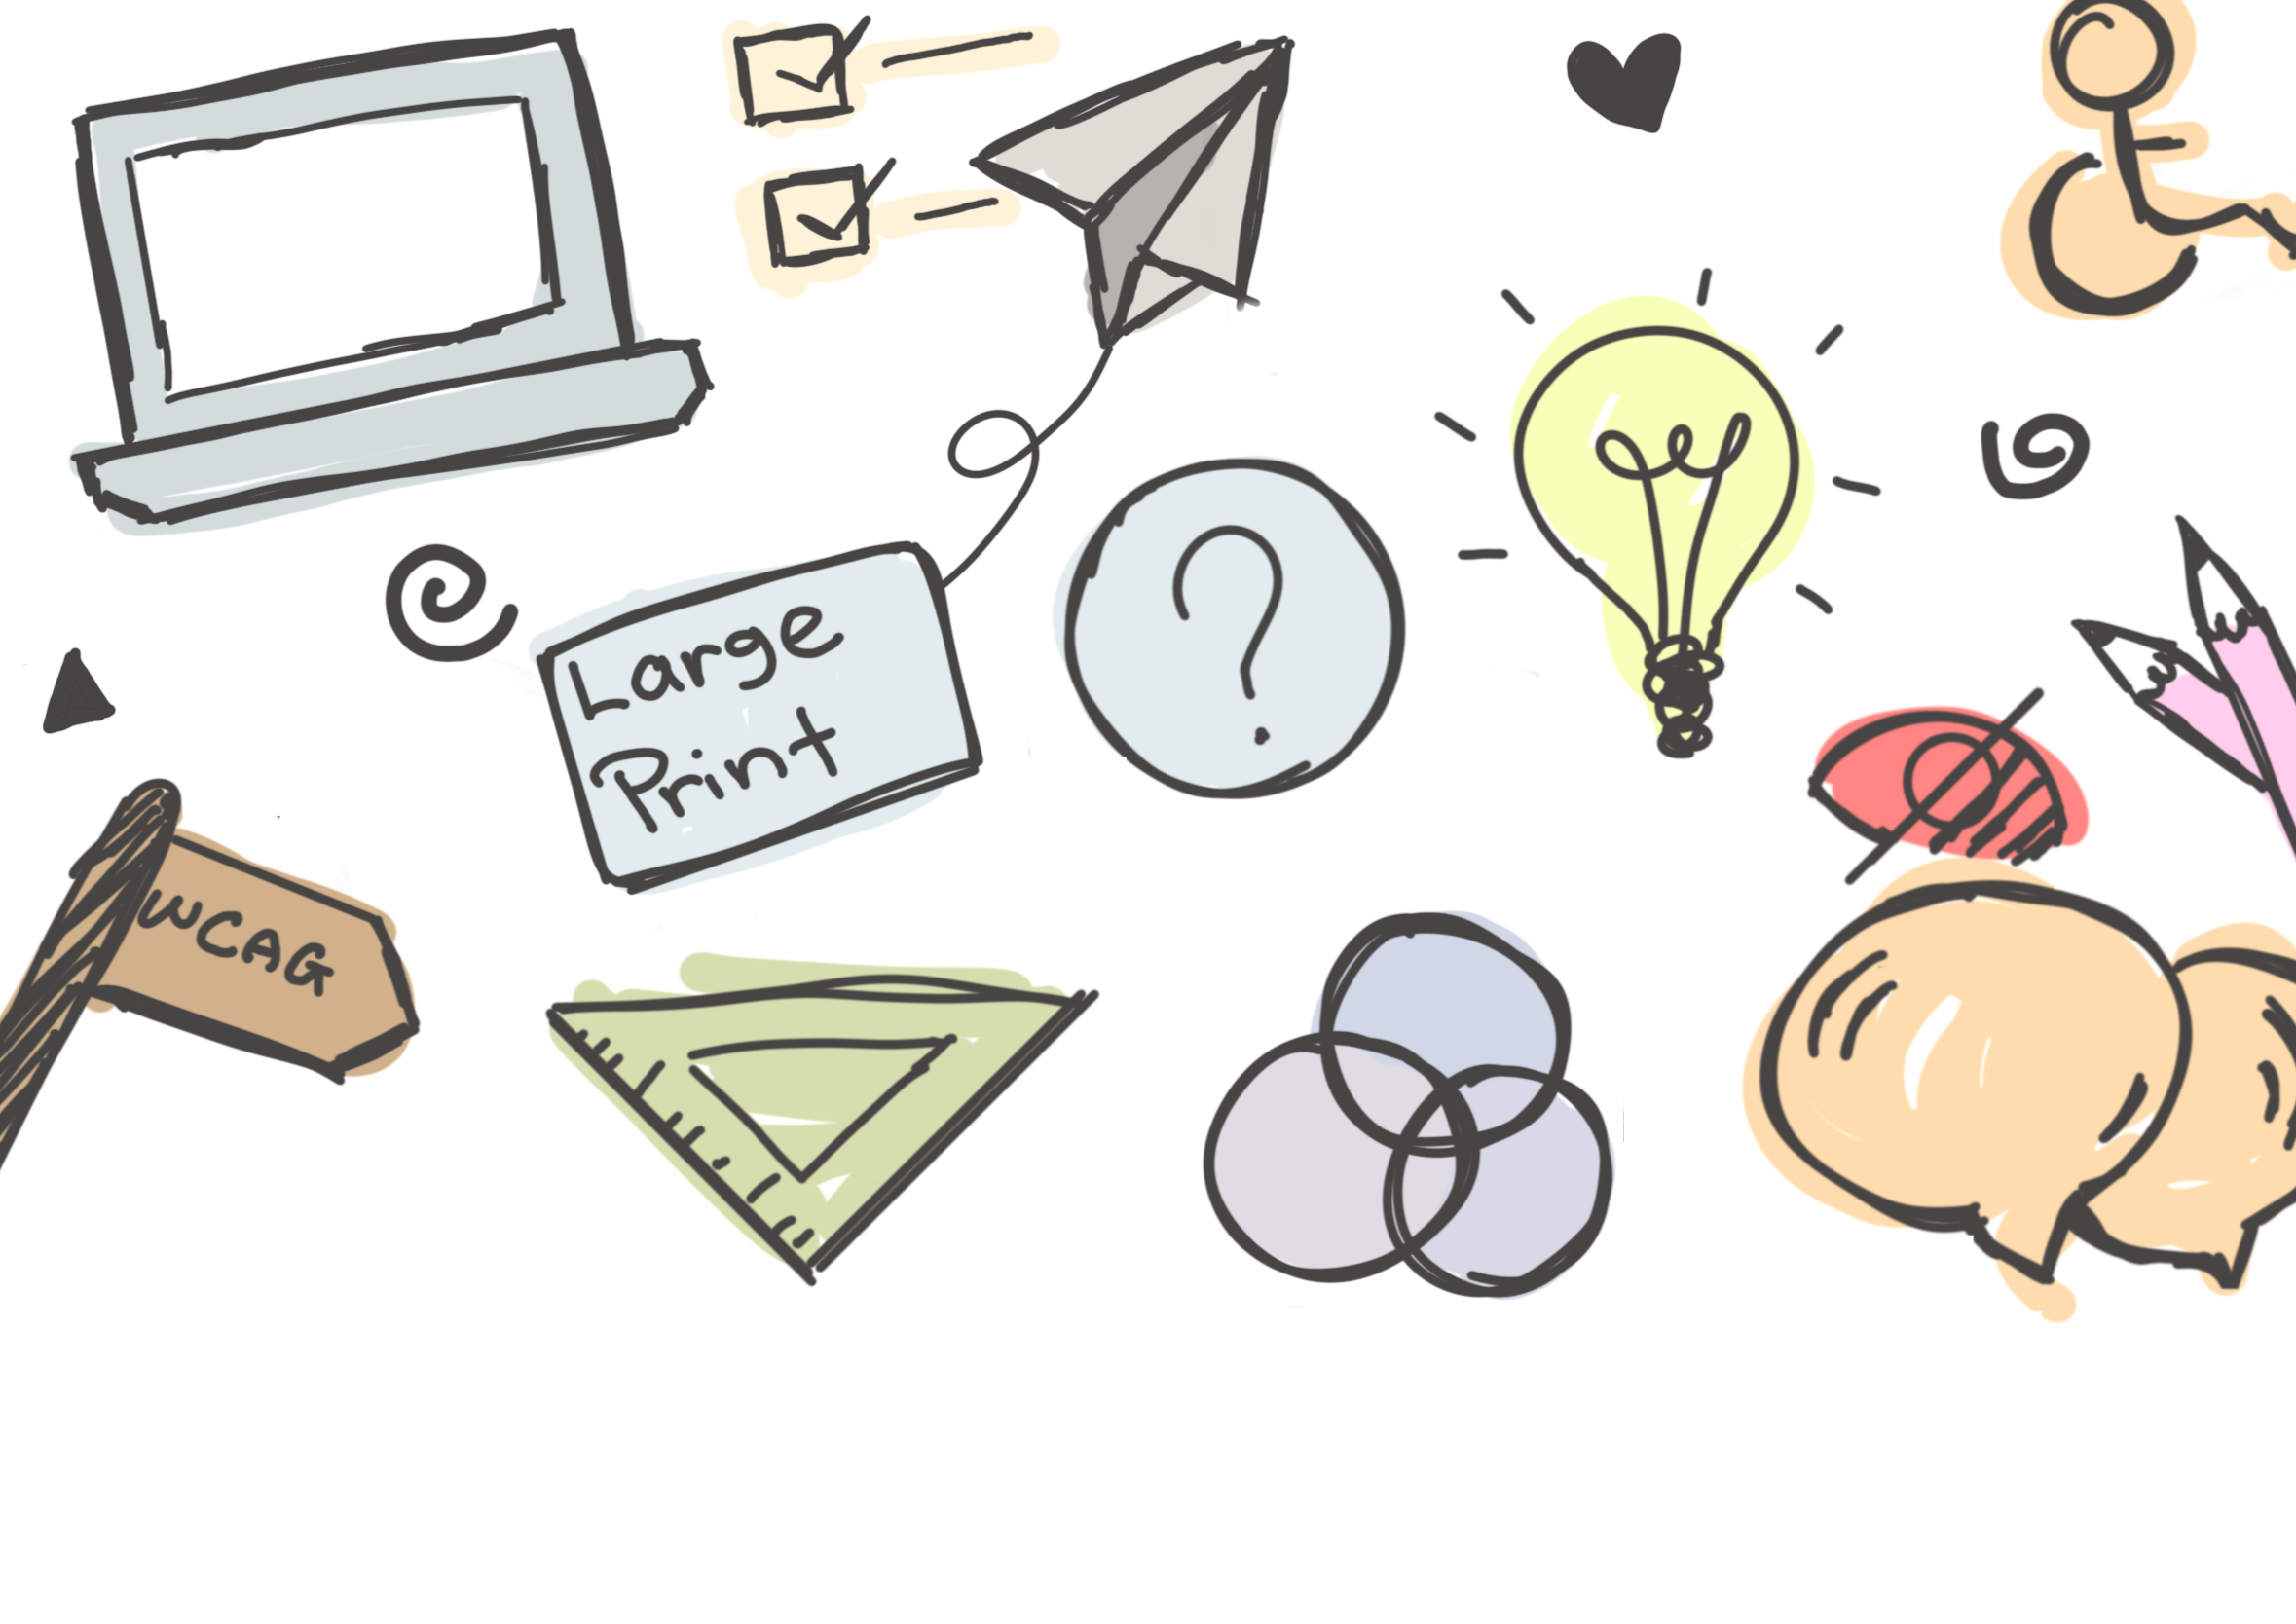 Doodles of icons that represent inclusive design